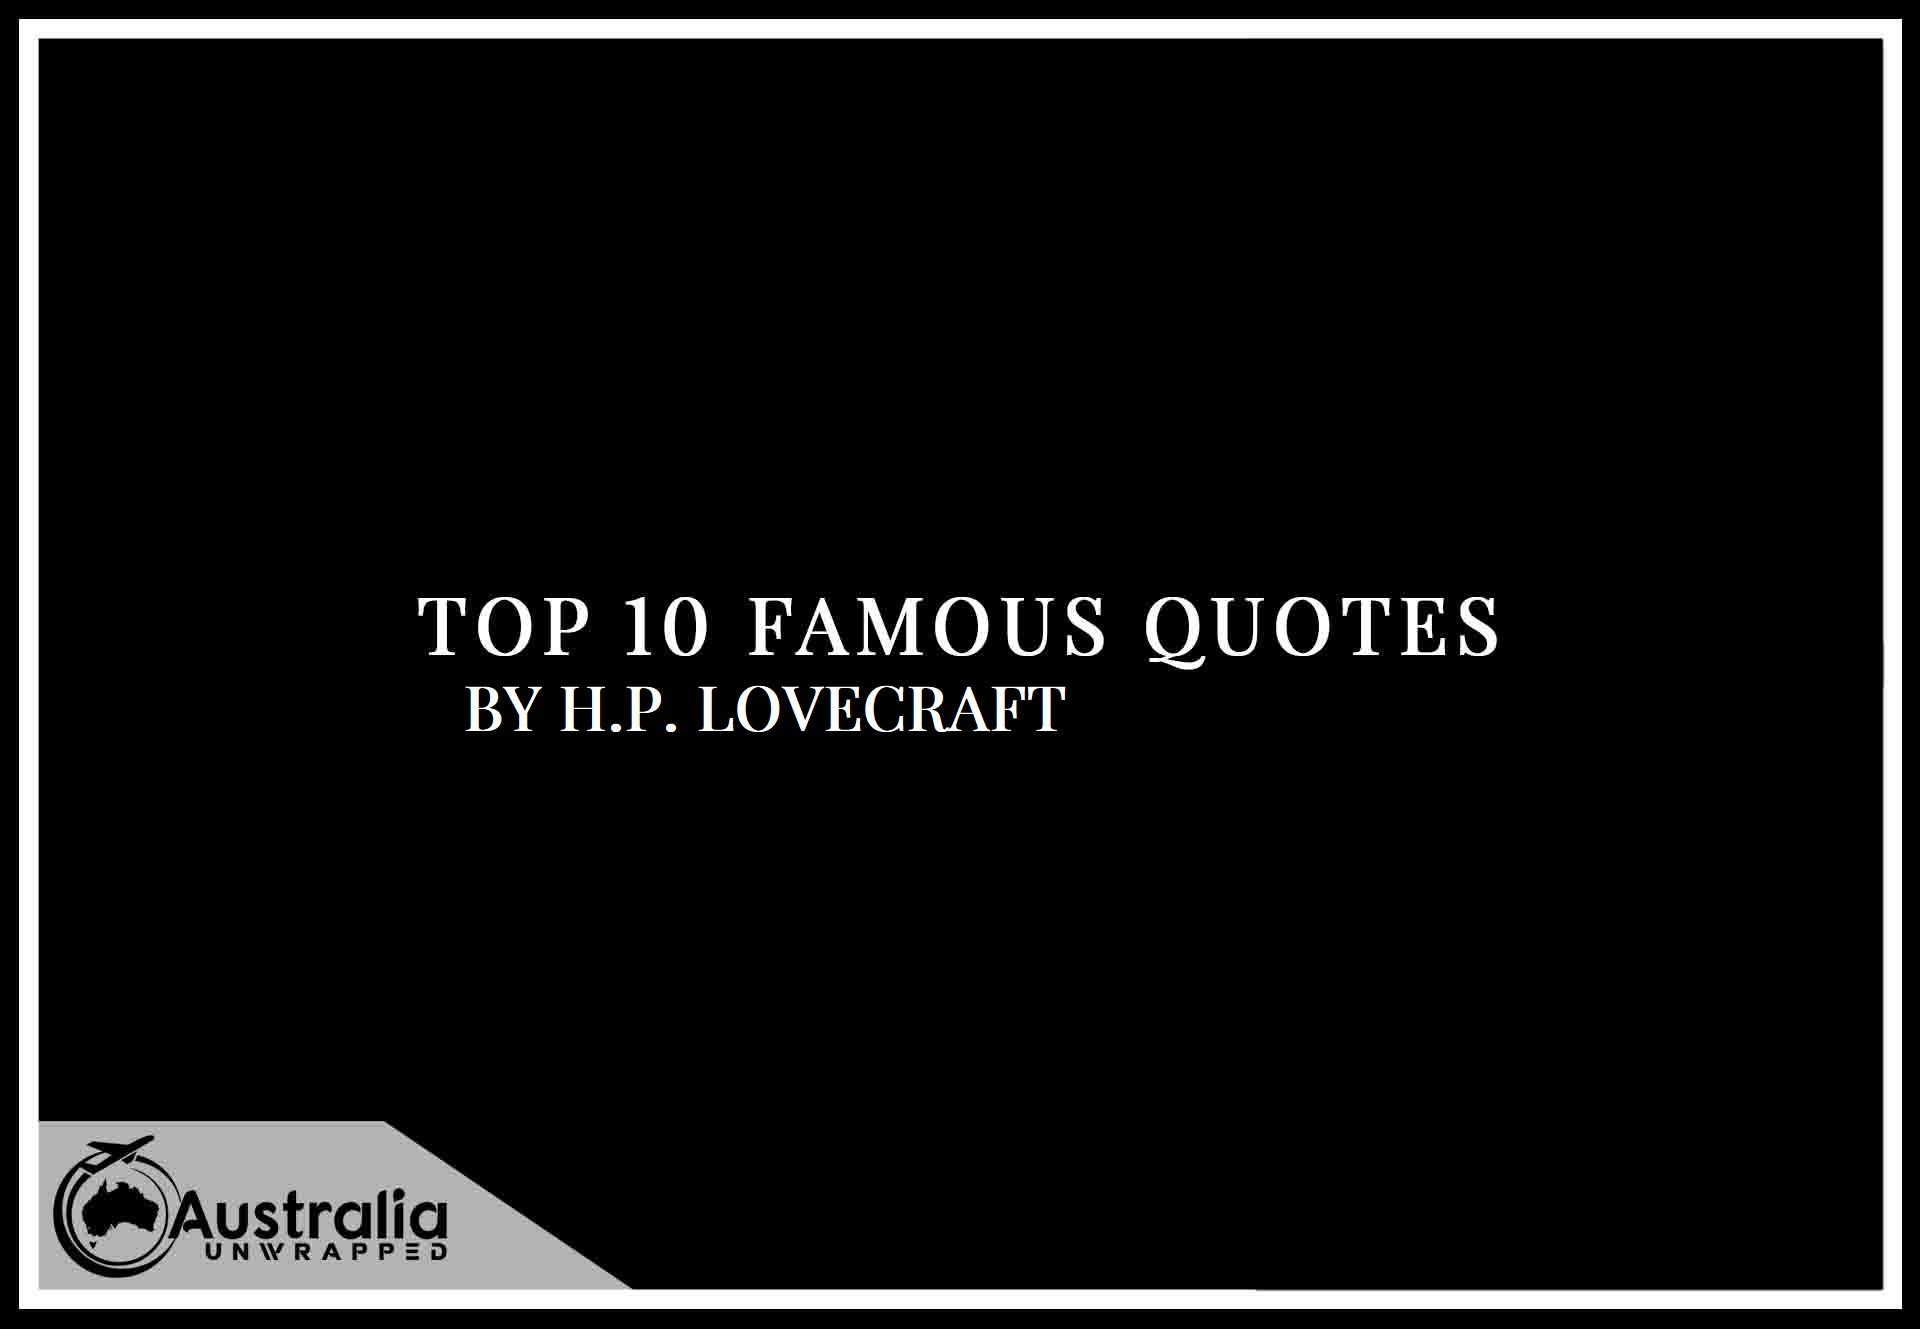 Top 10 Famous Quotes by Author H. P. Lovecraft